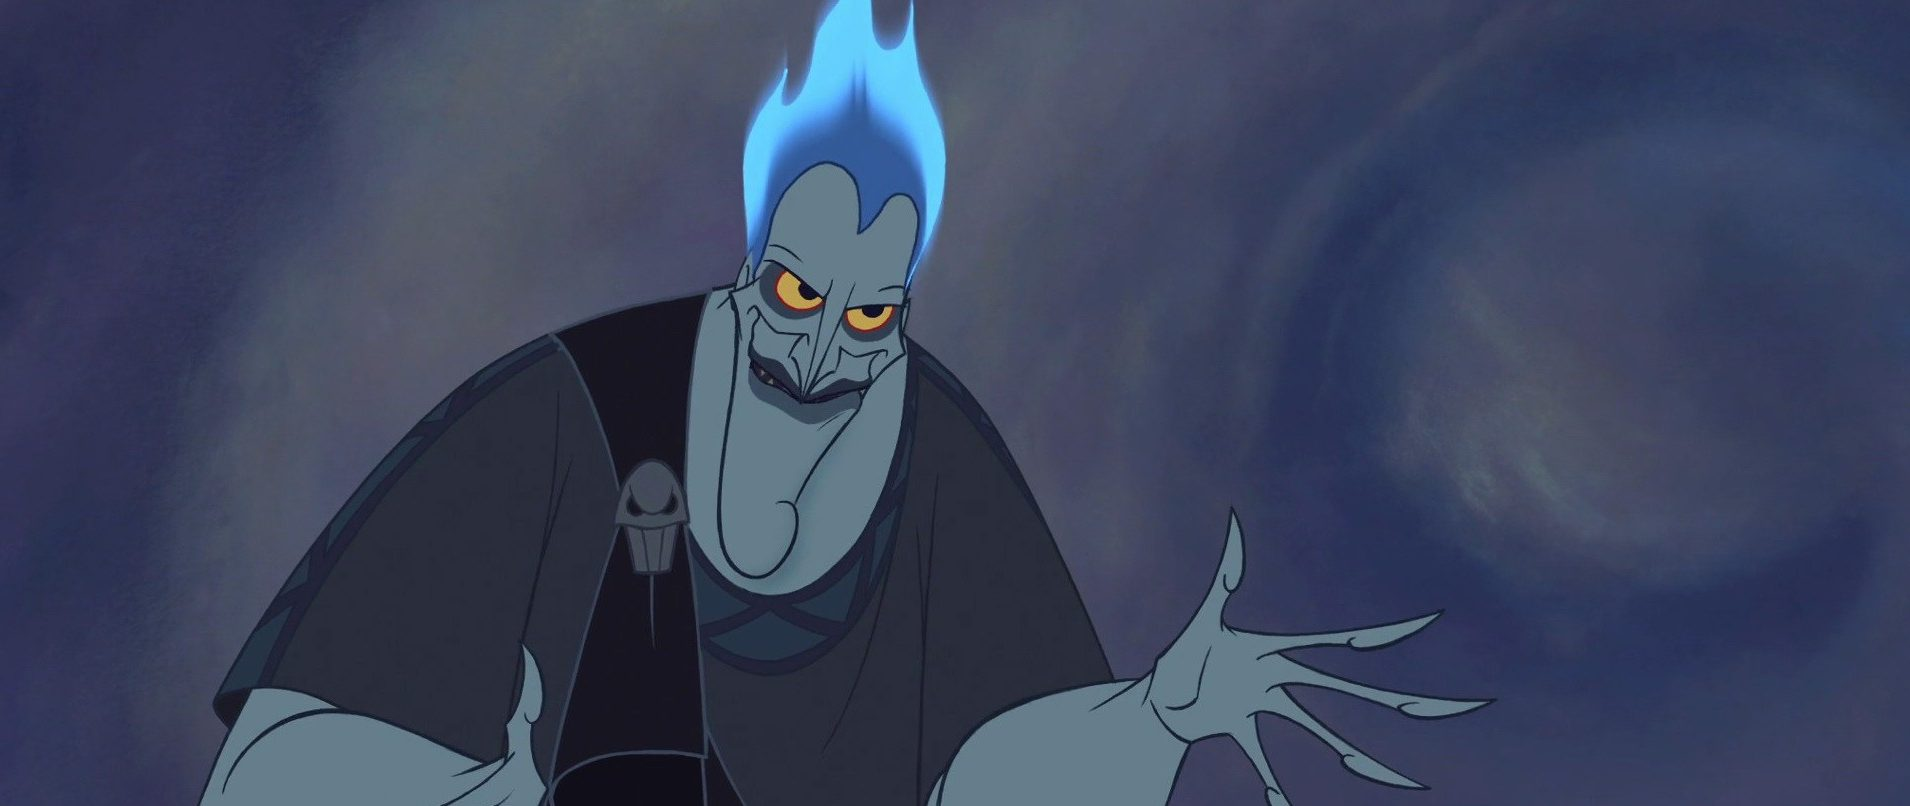 Este actor podría interpretar a Hades en el live-action de Hércules